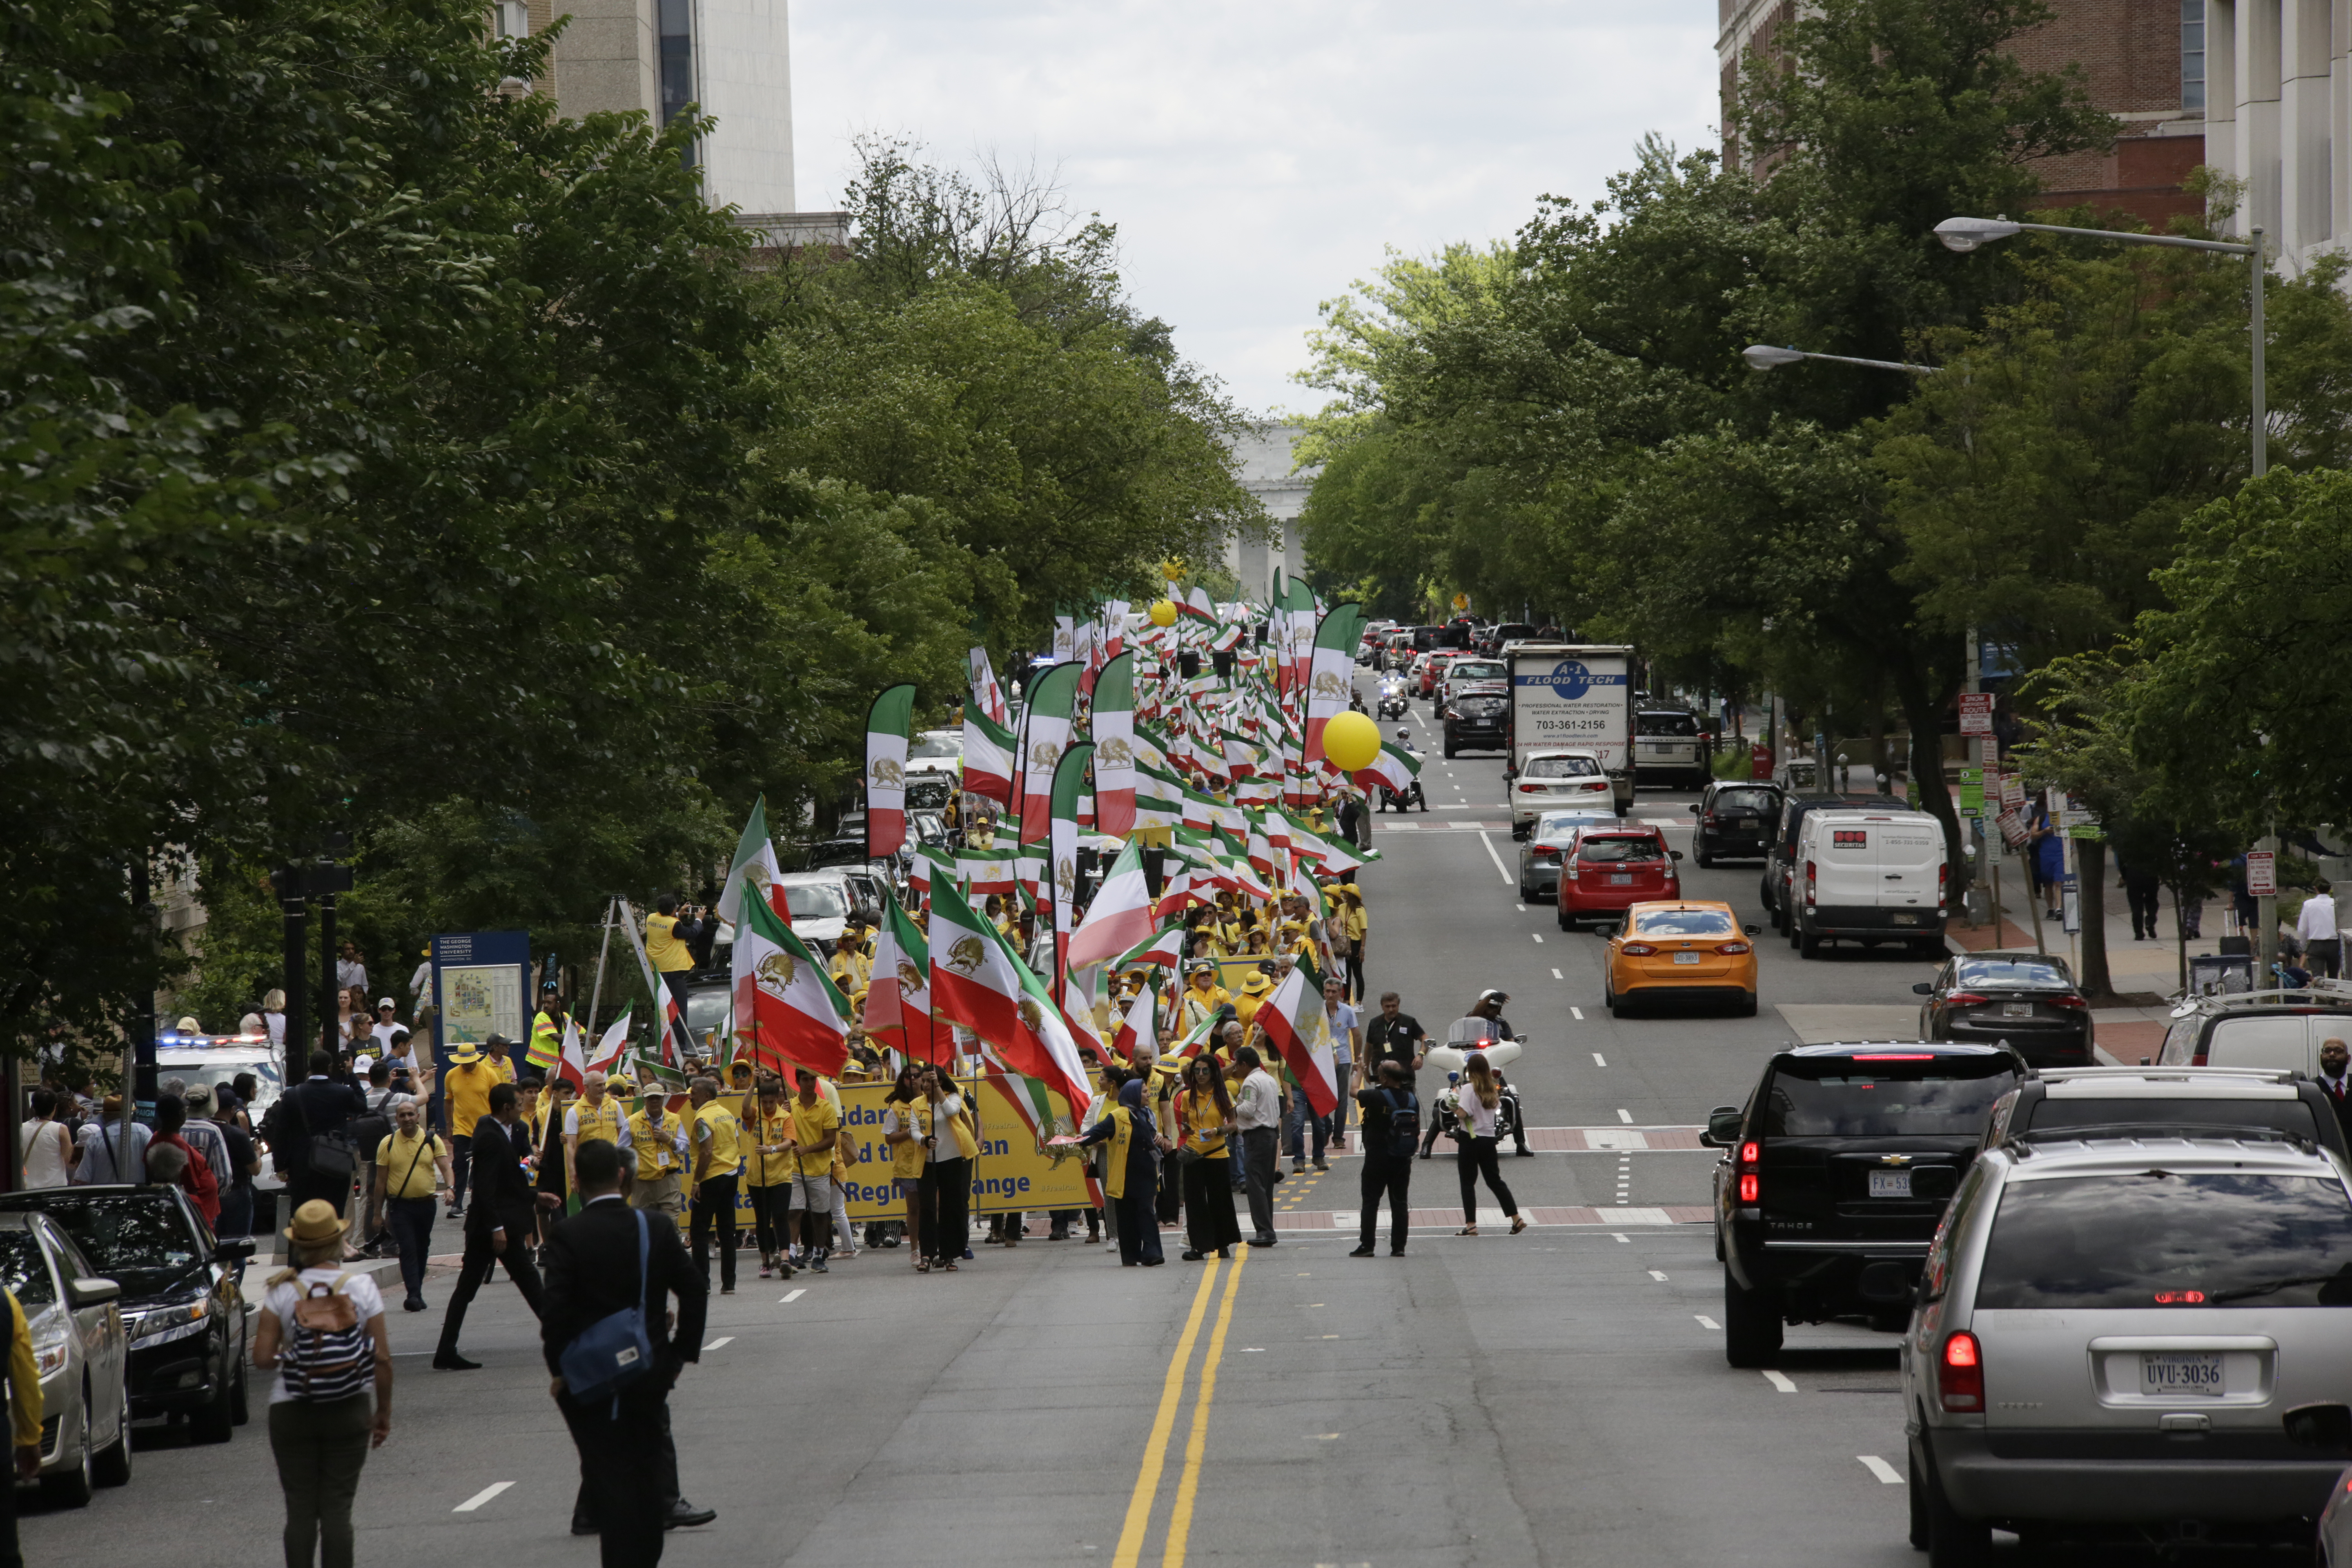 Free Iran Rally - Washington D.C.- June 21, 2019- Over ten thousand supporters of the National Council of Resistance of Iran (NCRI) demonstrated in support of Iran uprisings for freedom and democracy in Iran